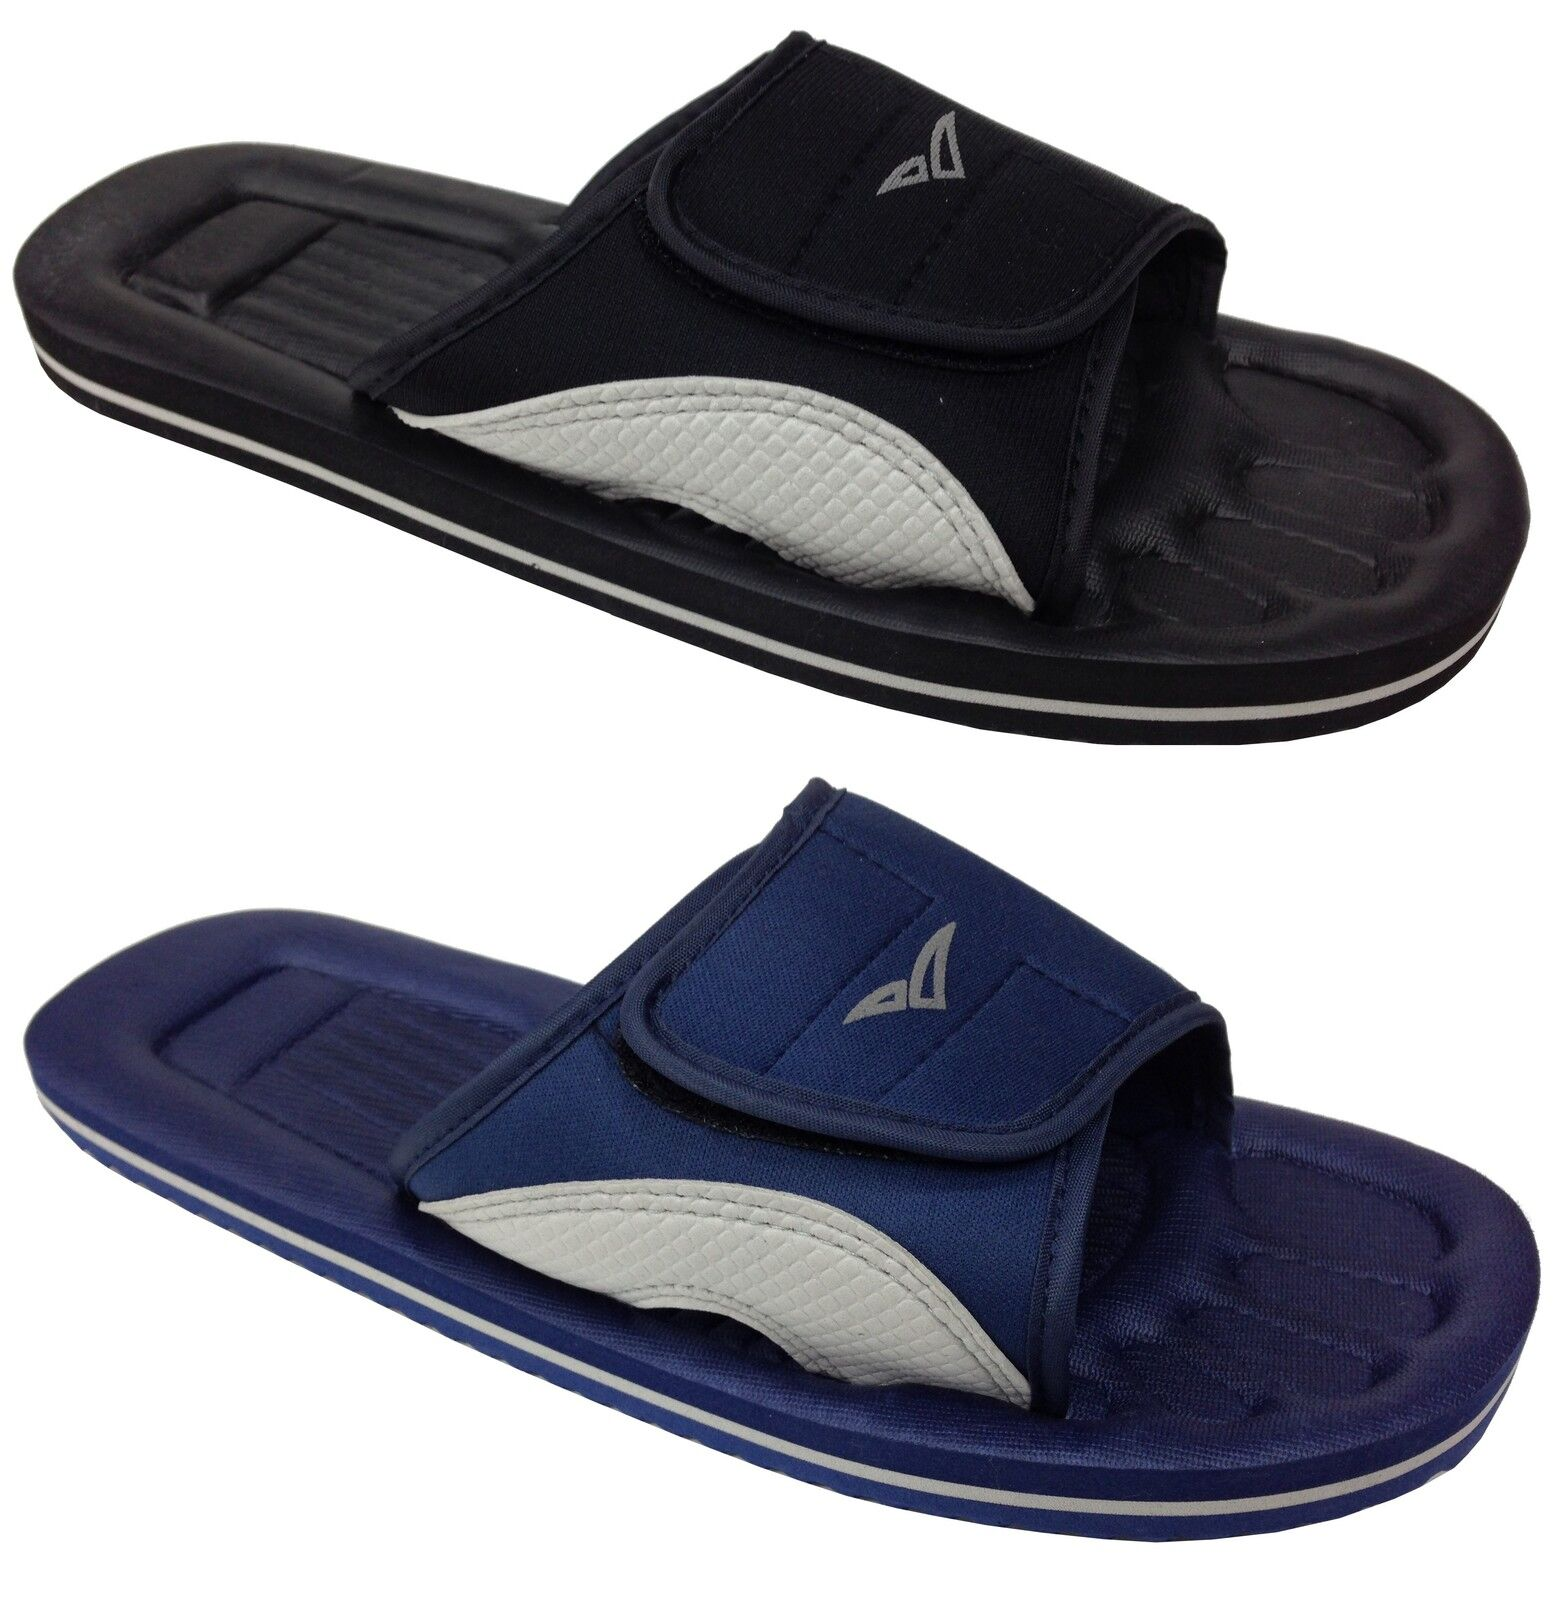 New Touch Unisex Shower Mules Black Navy Blue Touch New Casual Comfy Waterproof Everyday bf7ab3